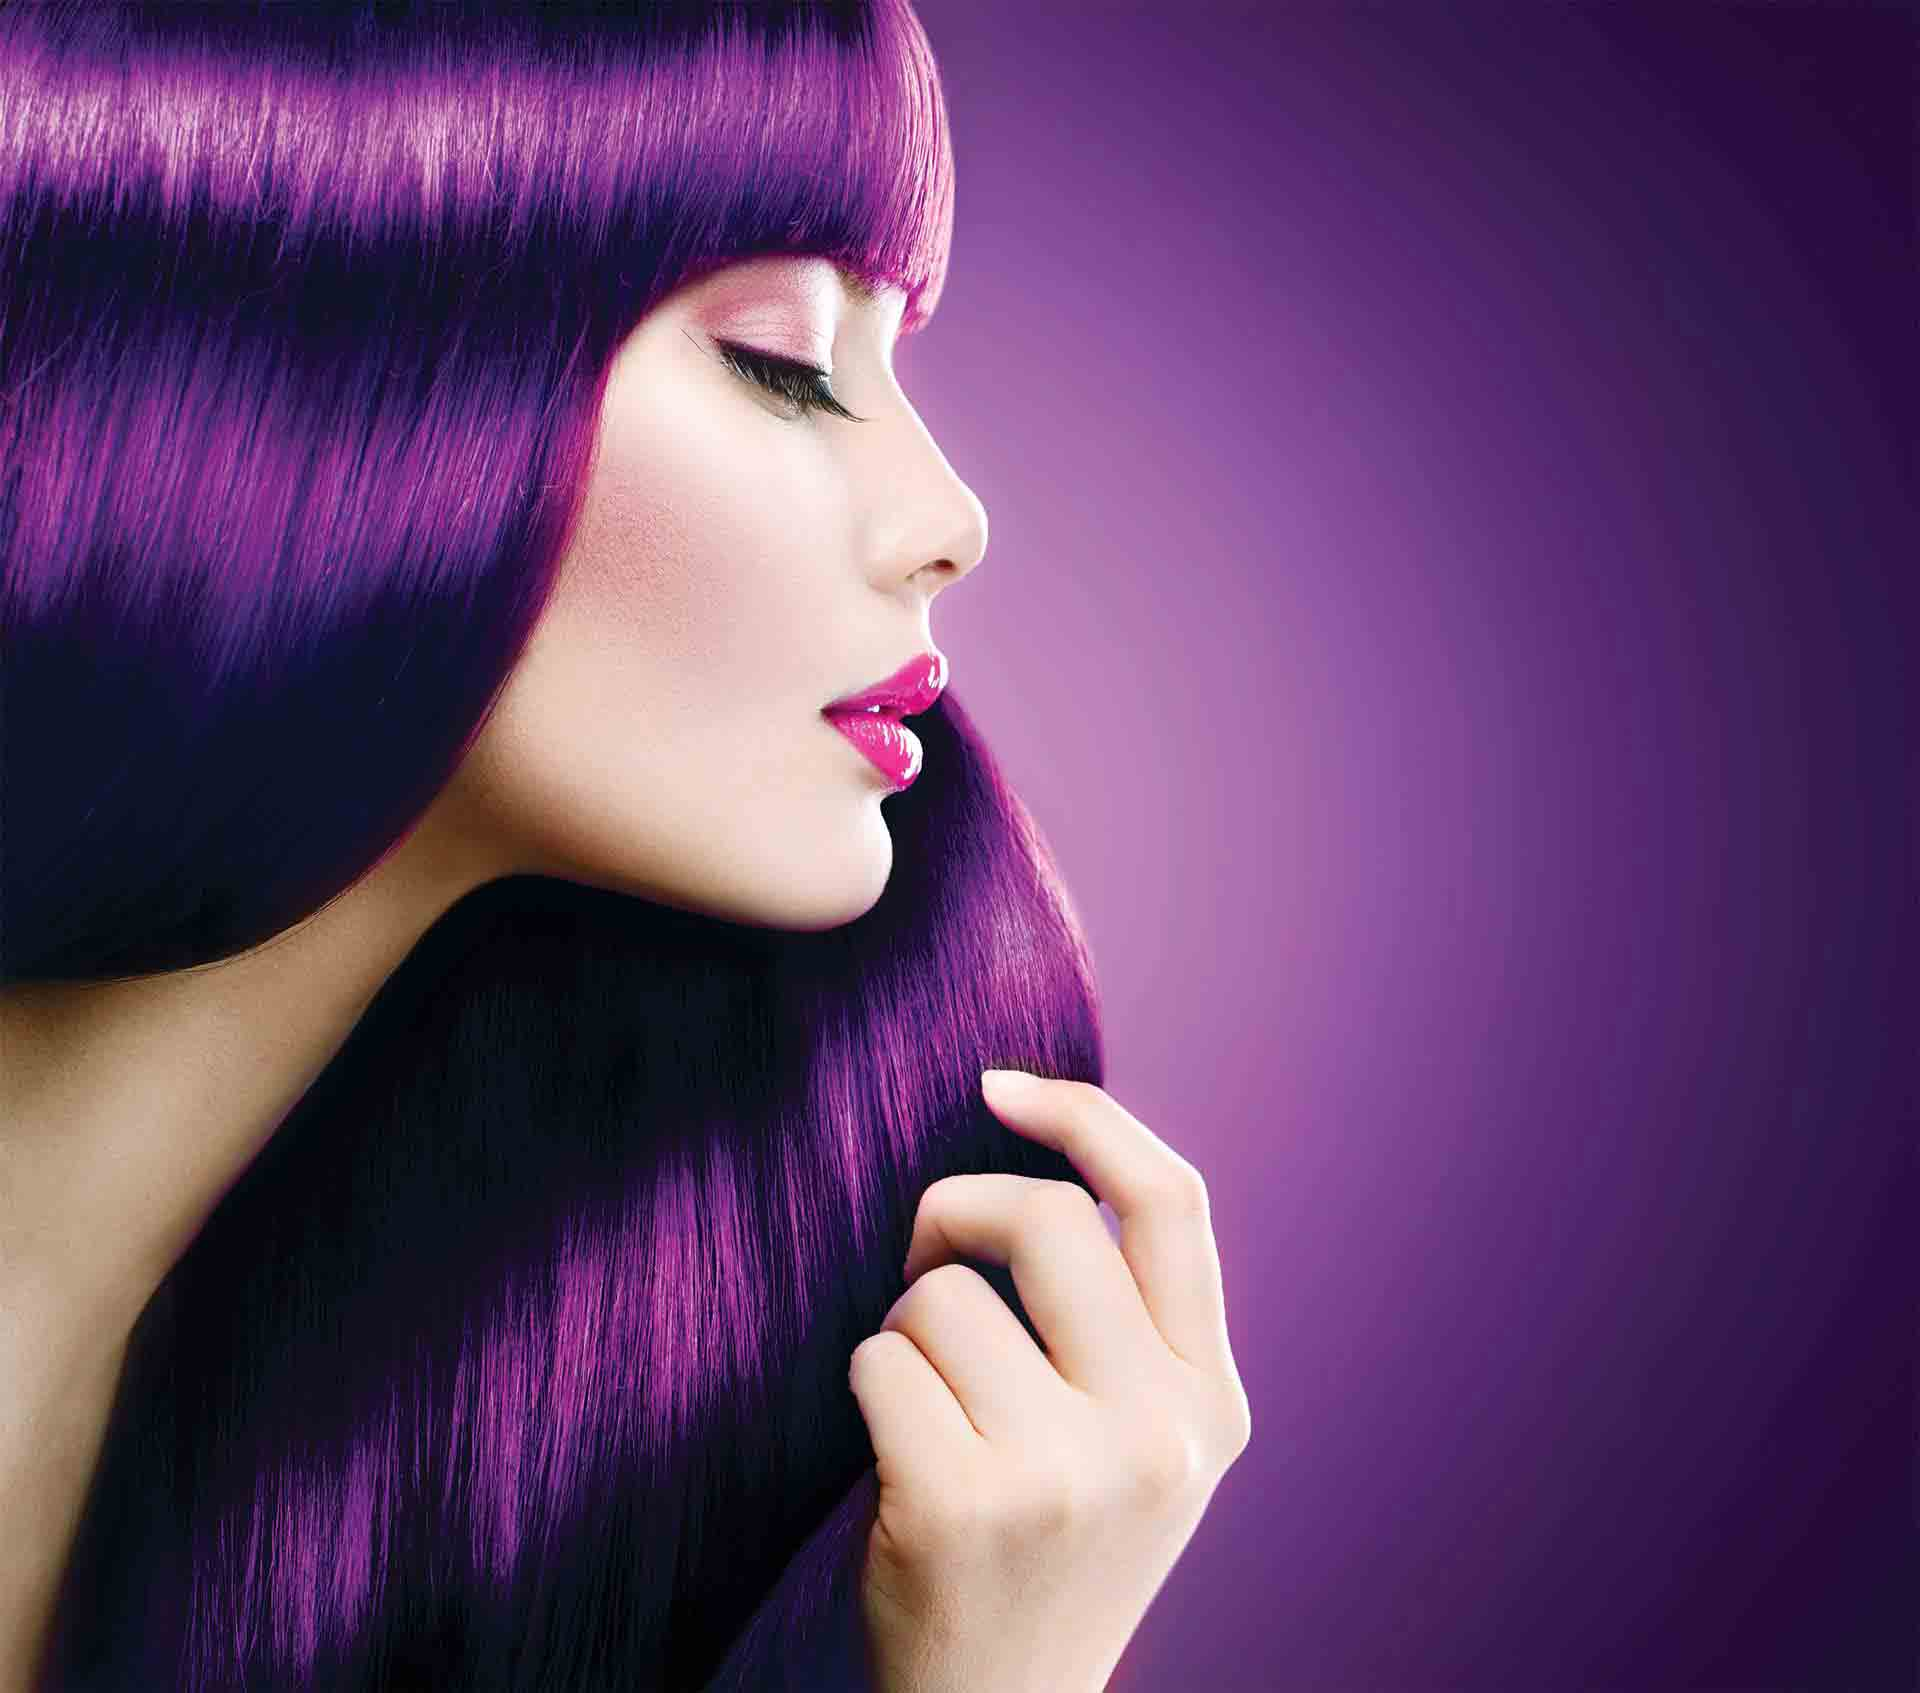 Hair Salon Hairstyles: Hair Salon South Plainfield, NJ